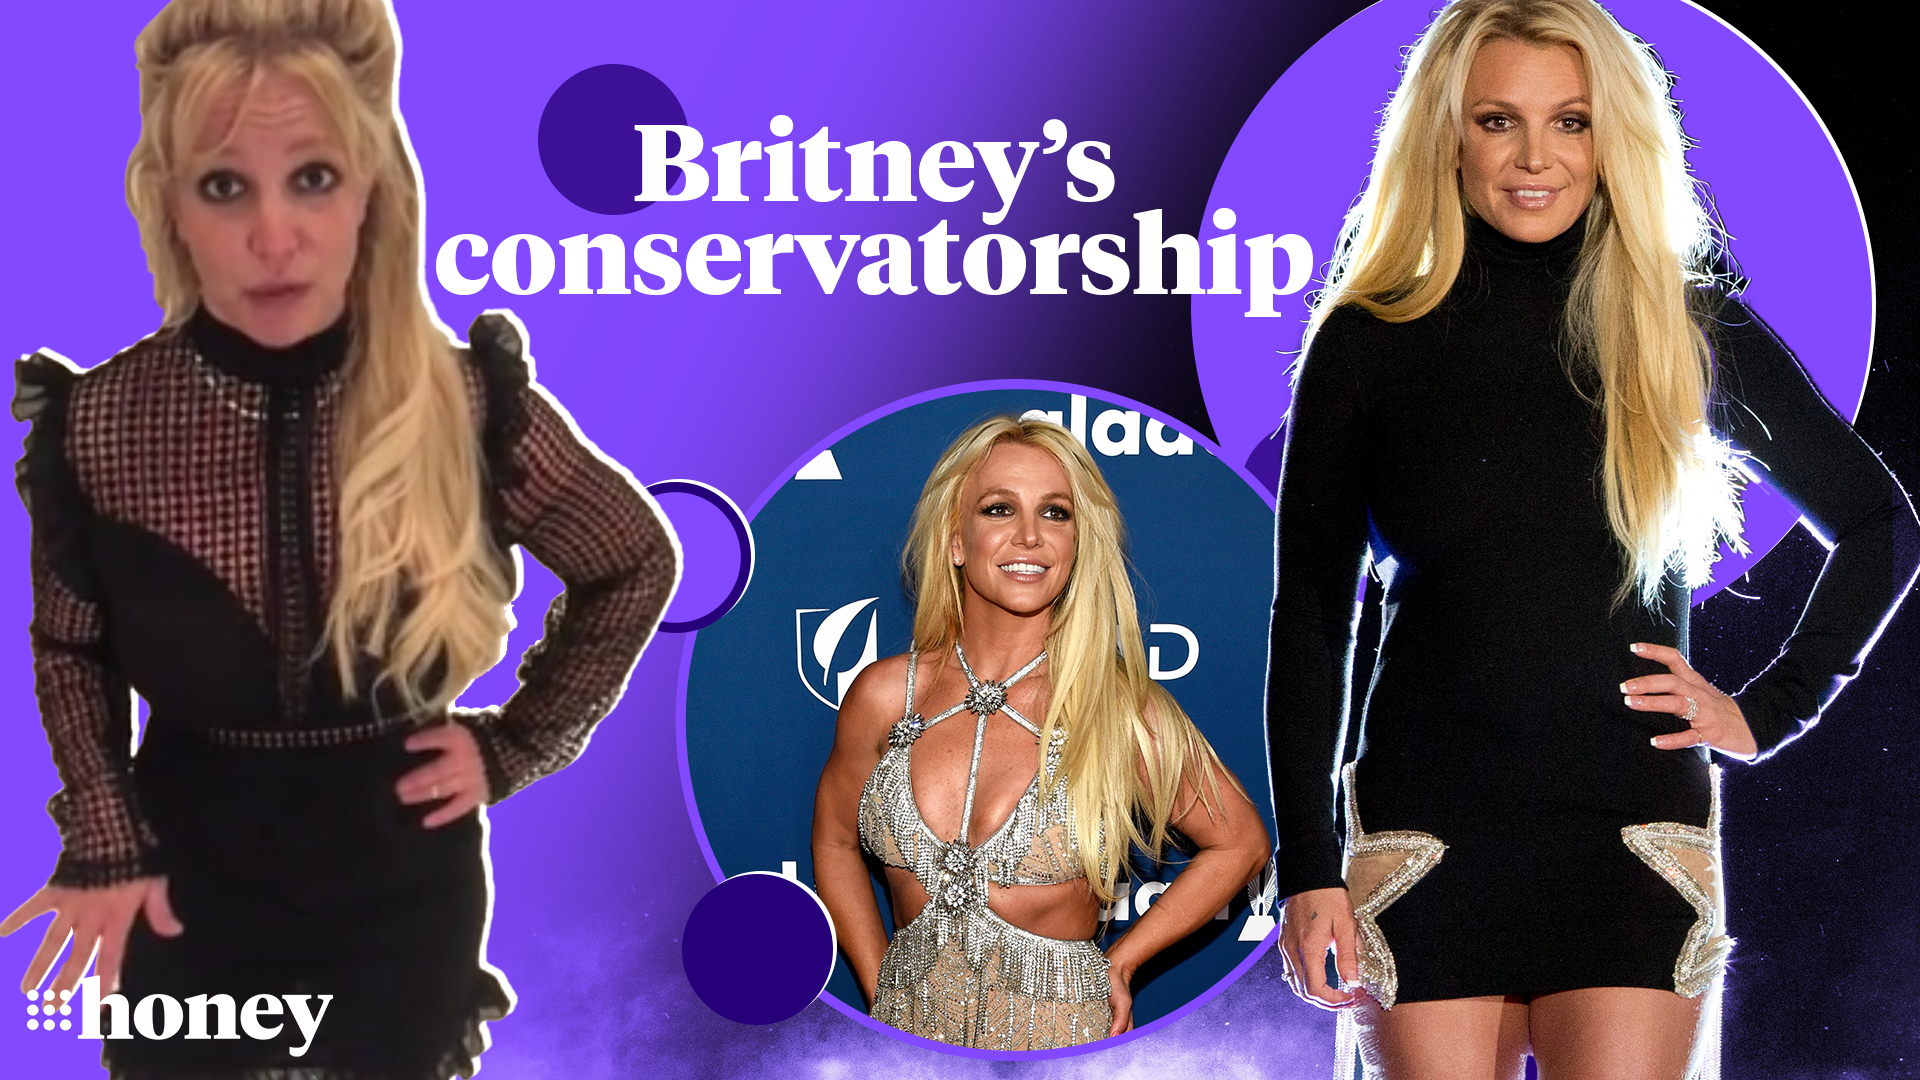 What's going on with Britney Spears and her conservatorship